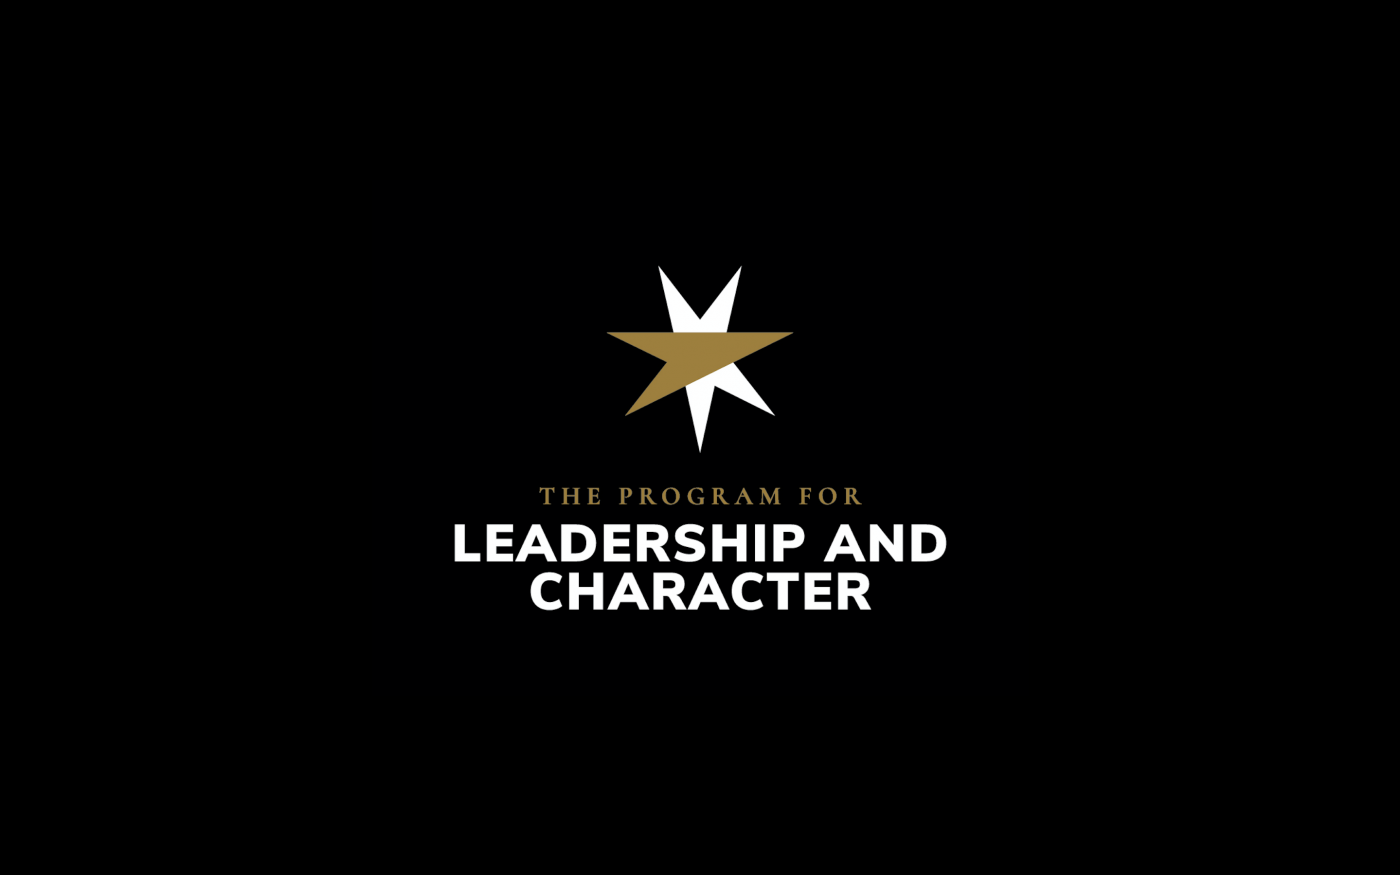 Journal Publishes Article on Seven Strategies for Developing Character